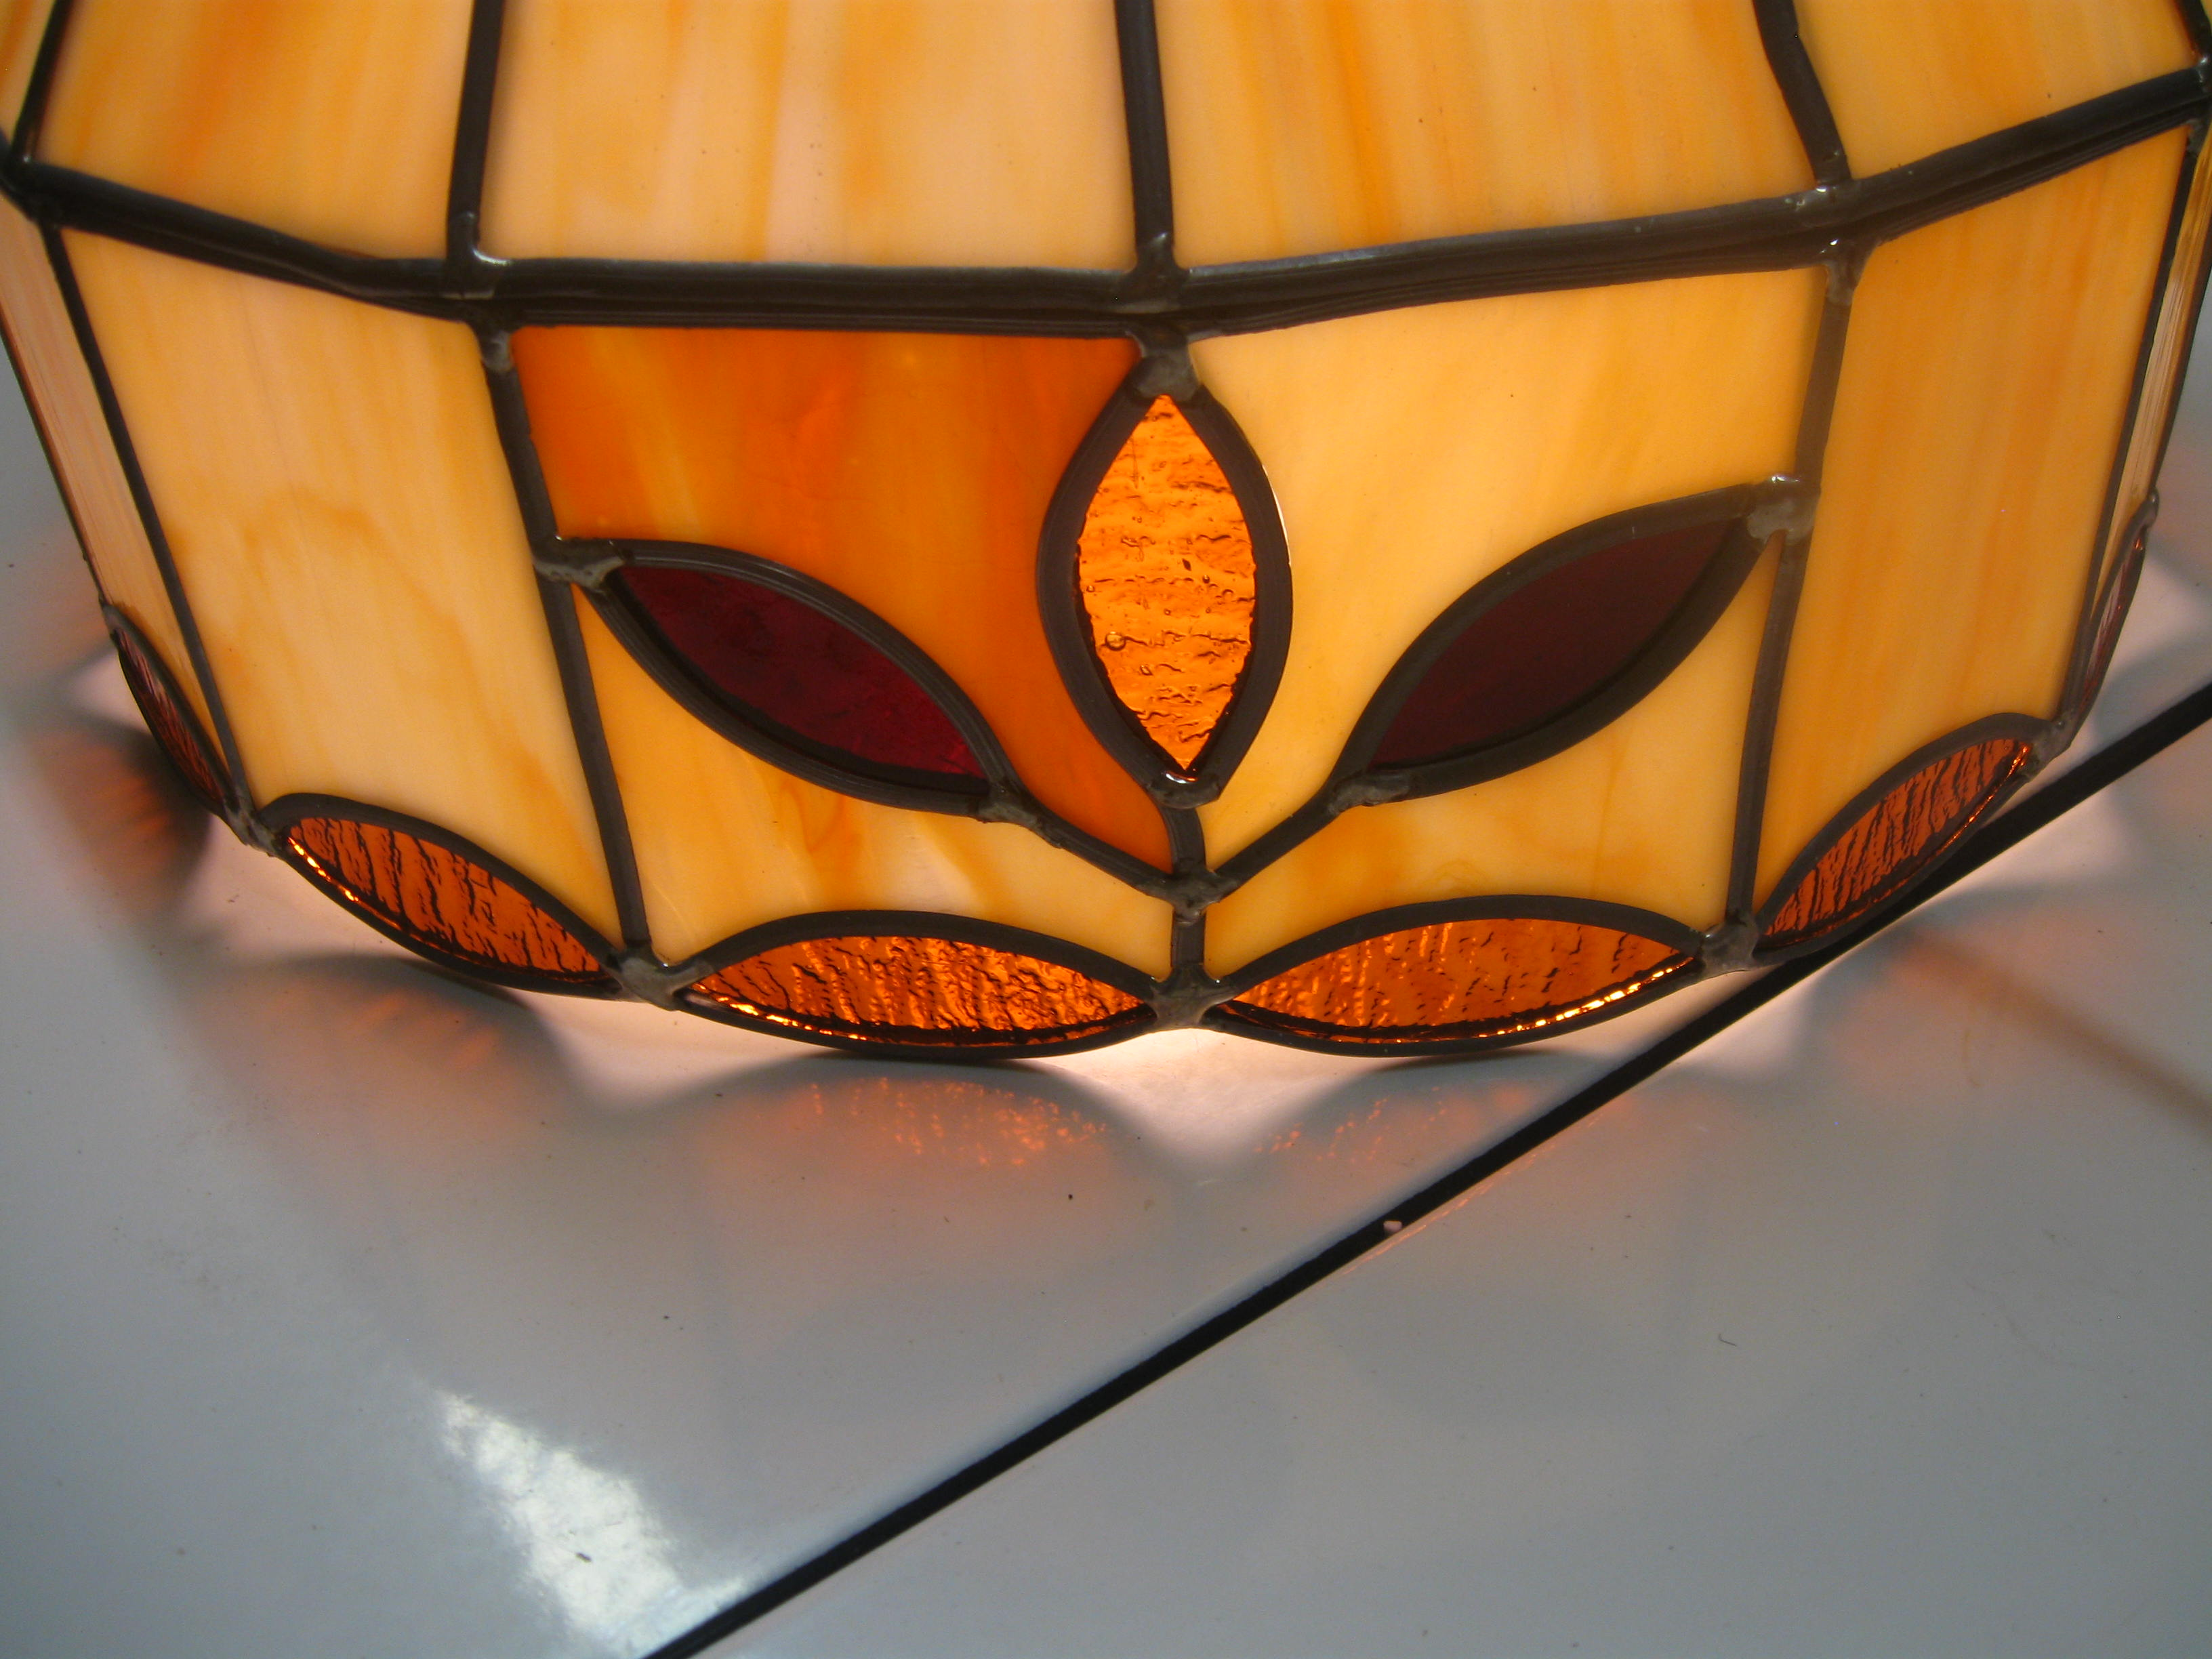 Tiffany style, man made material, lamp 004.JPG